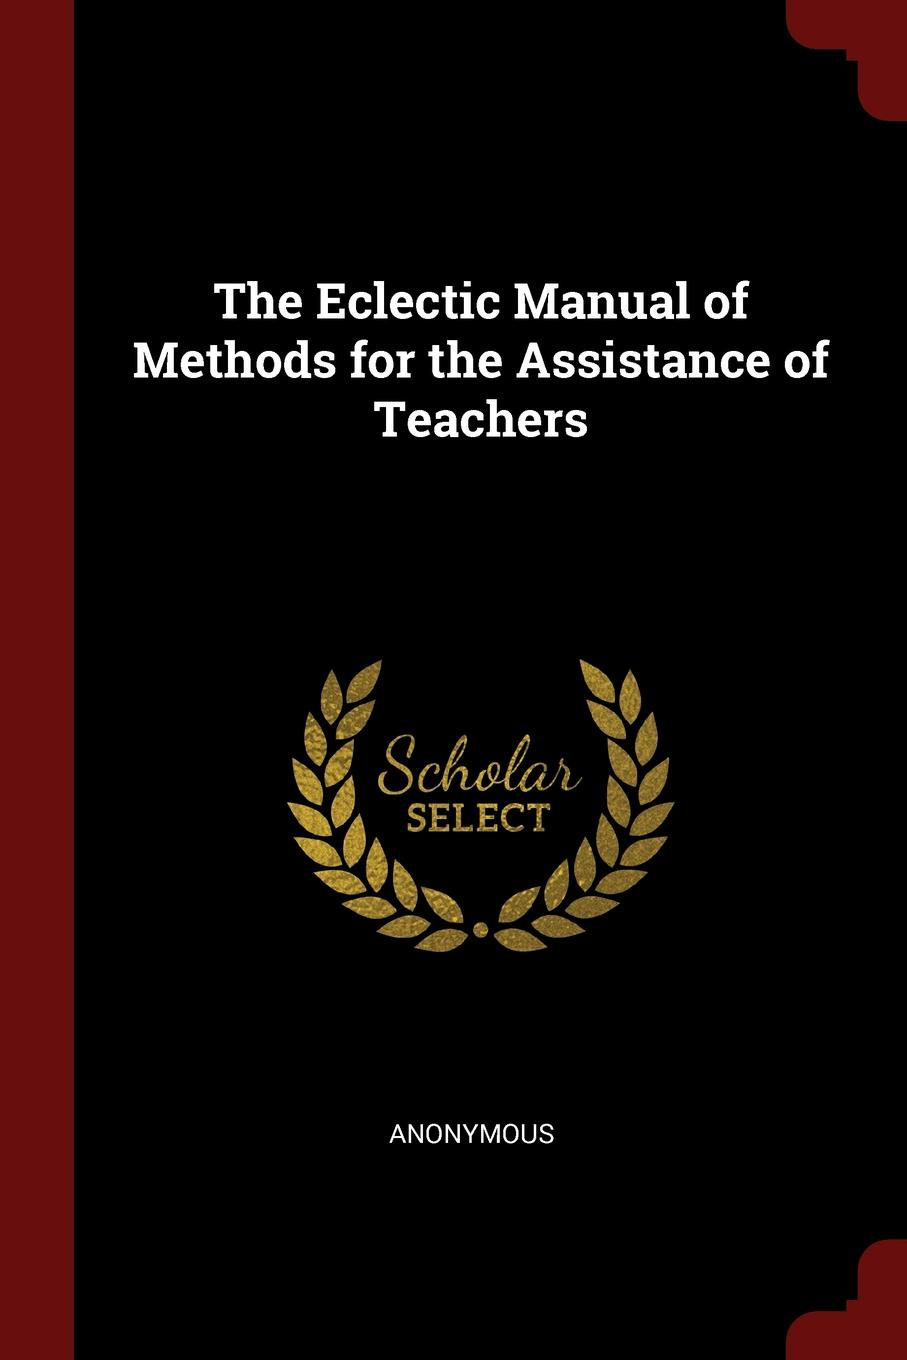 The Eclectic Manual of Methods for the Assistance of Teachers